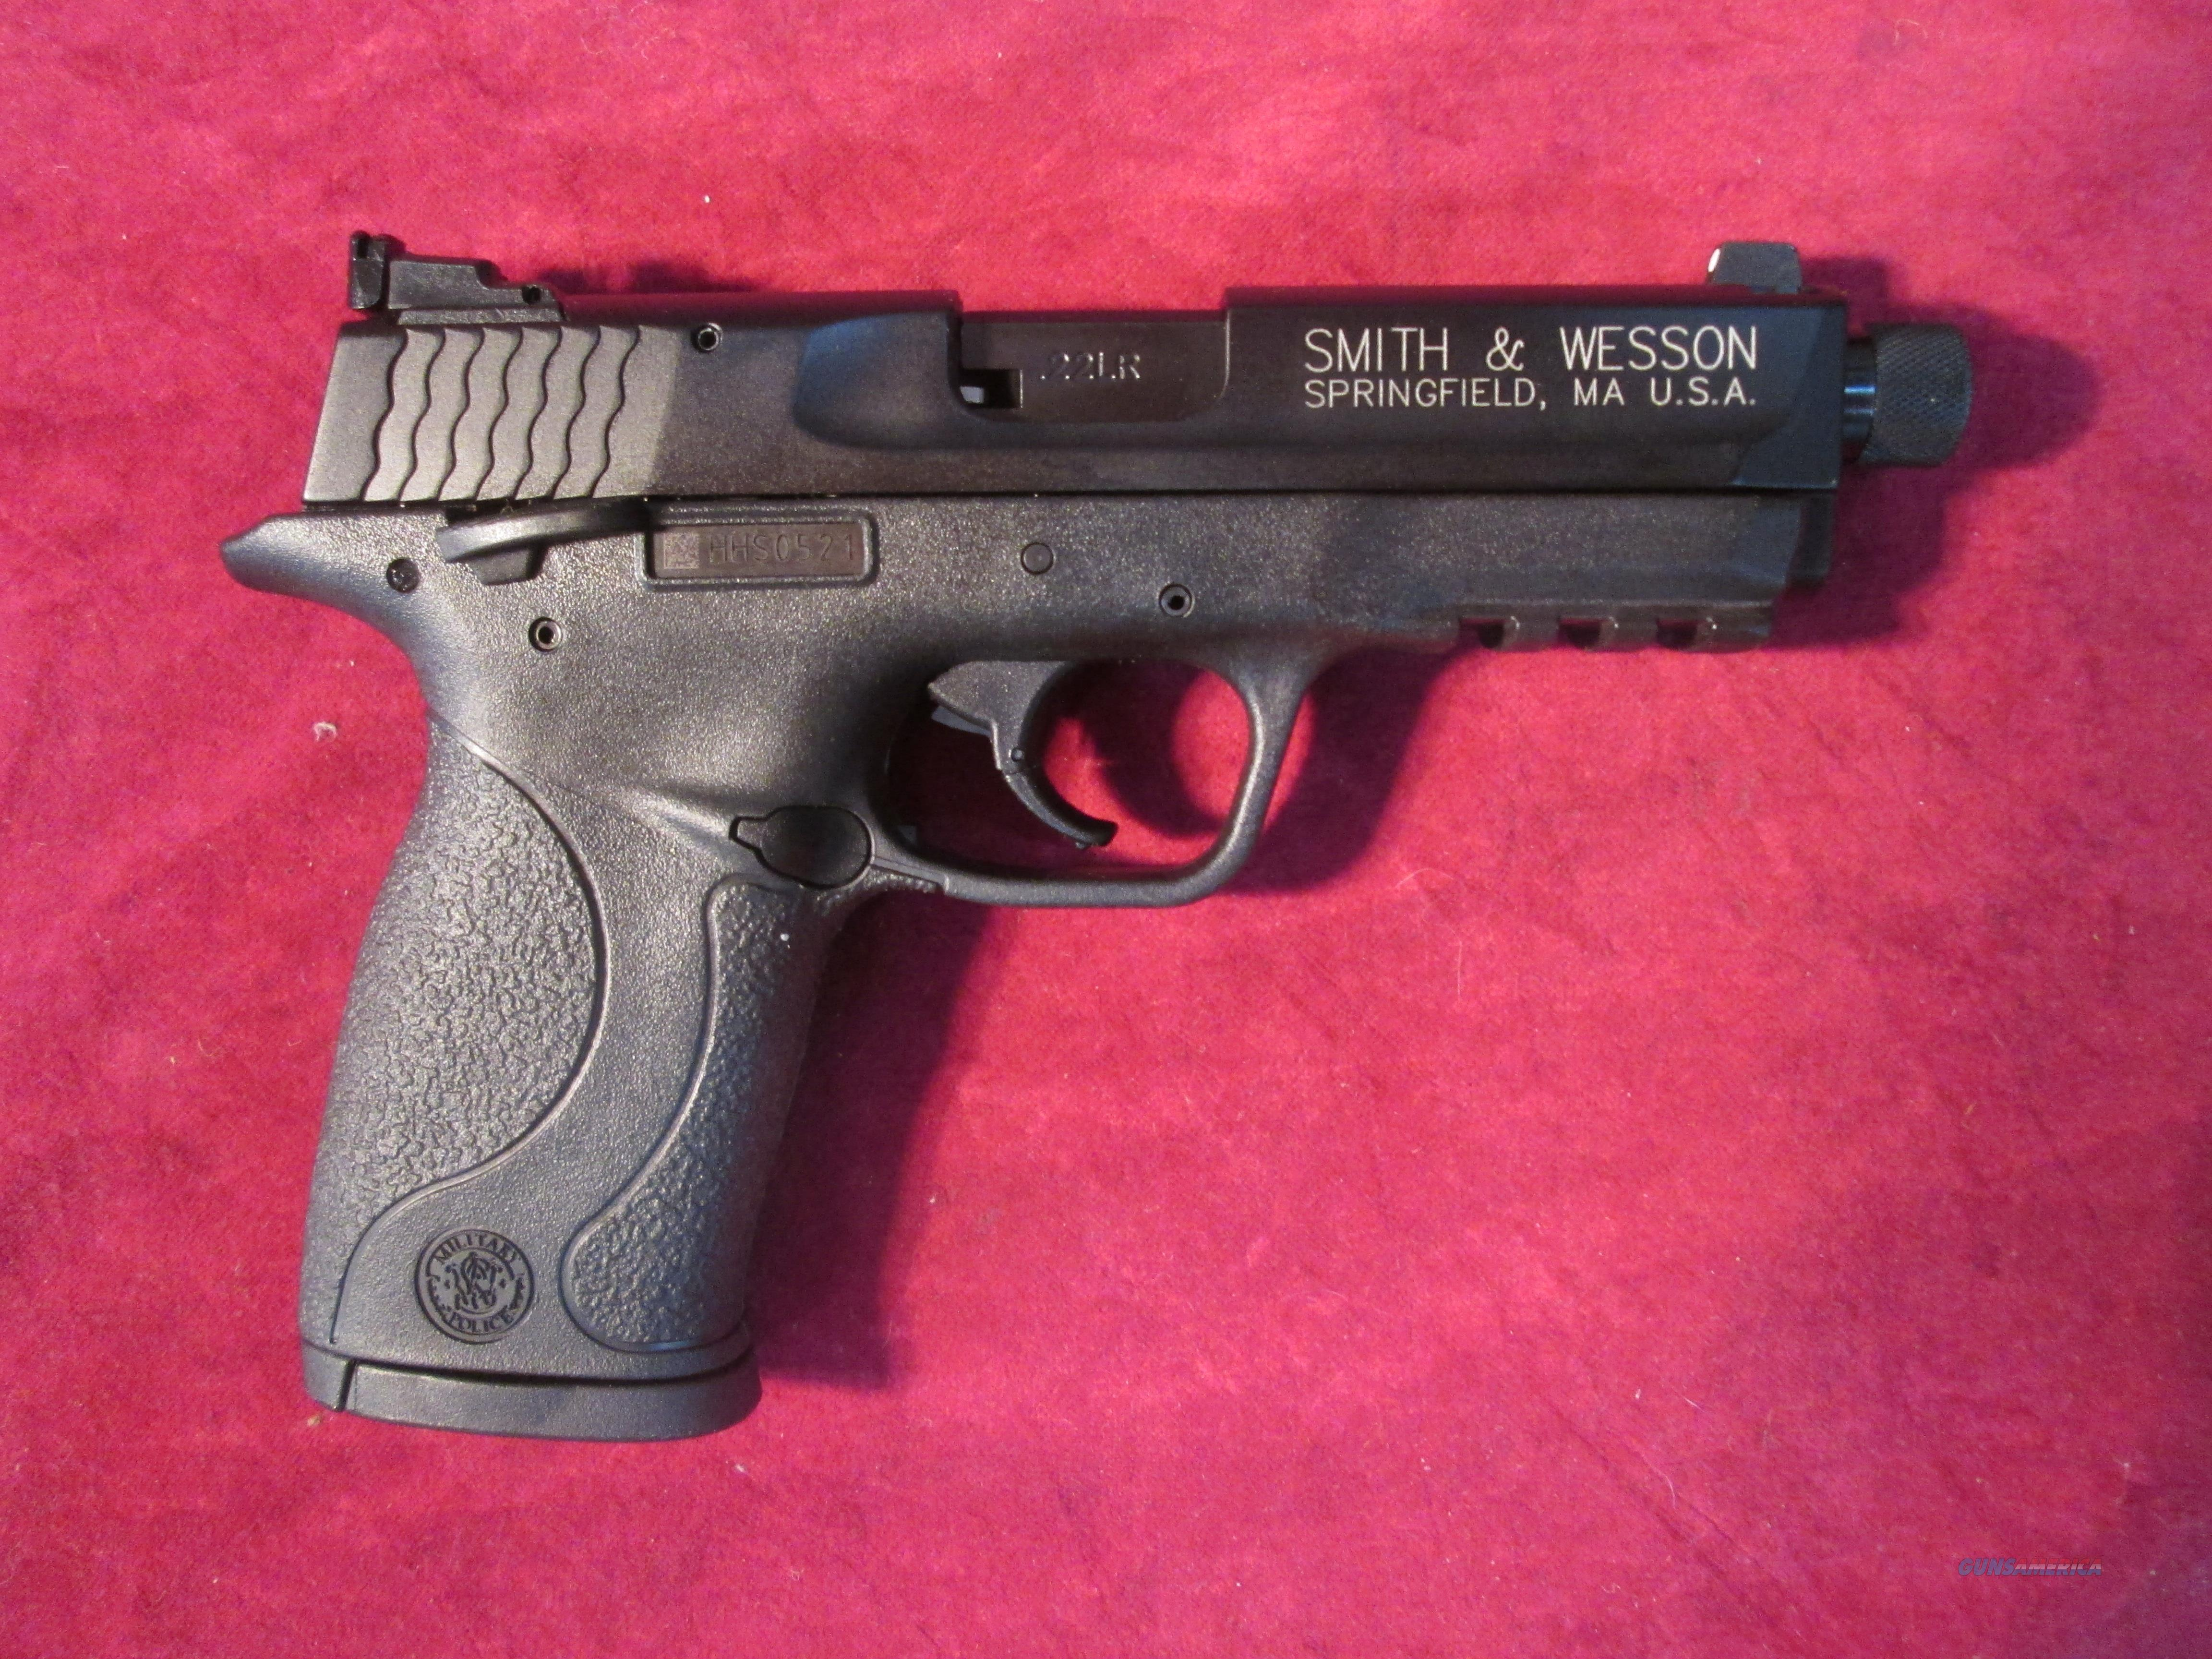 SMITH AND WESSON M&P 22 COMPACT THREADED BARREL 22LR NEW   (10199)   Guns > Pistols > Smith & Wesson Pistols - Autos > .22 Autos